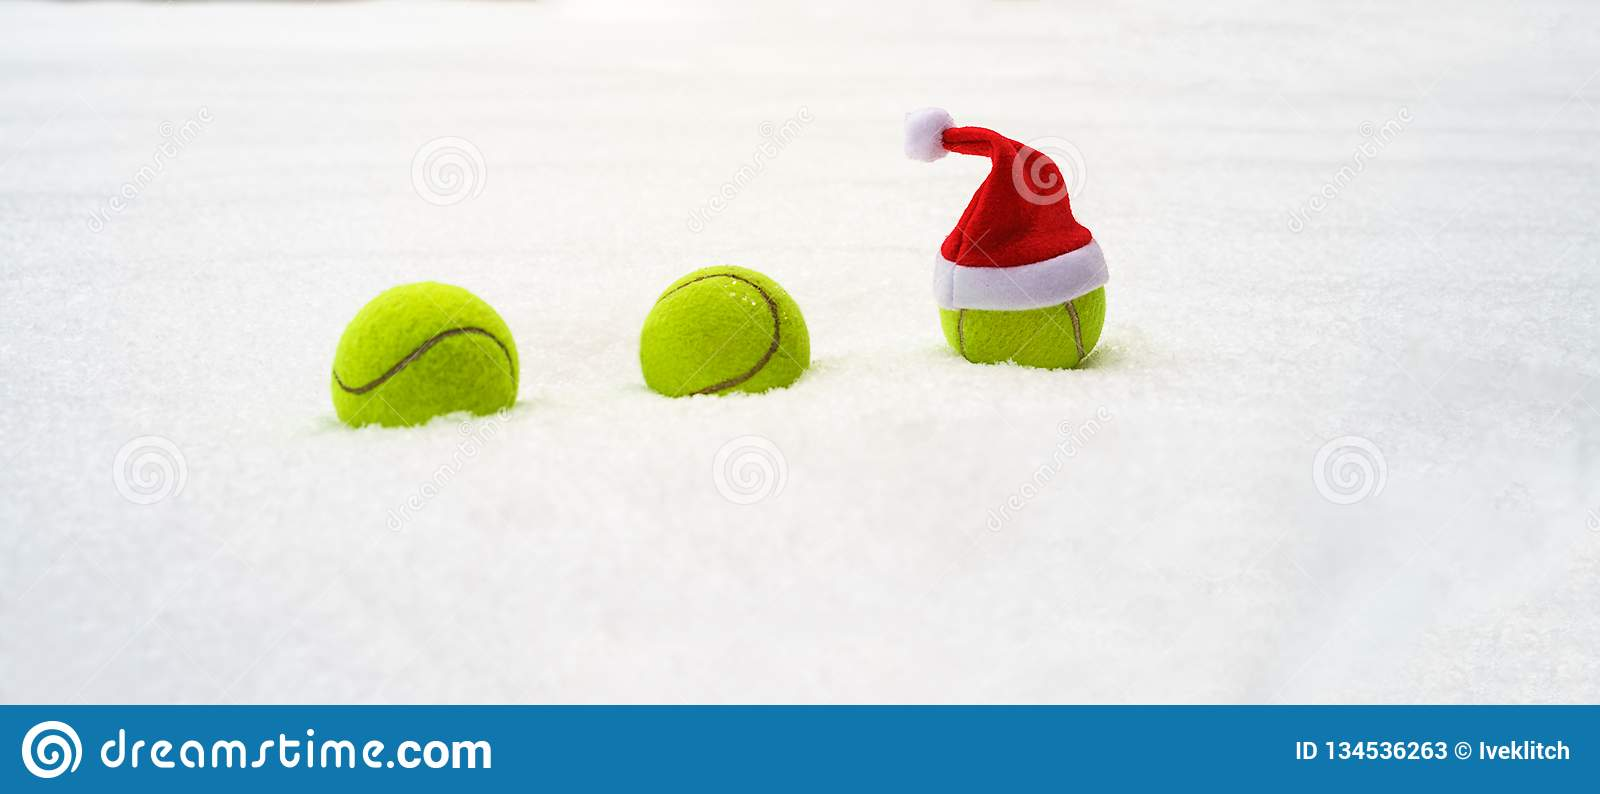 Santa hat on tennis ball on white snow background. Christmas and New year concept with tennis balls. Close up, sport lifestyle. Santa hat on tennis ball on white stock photos